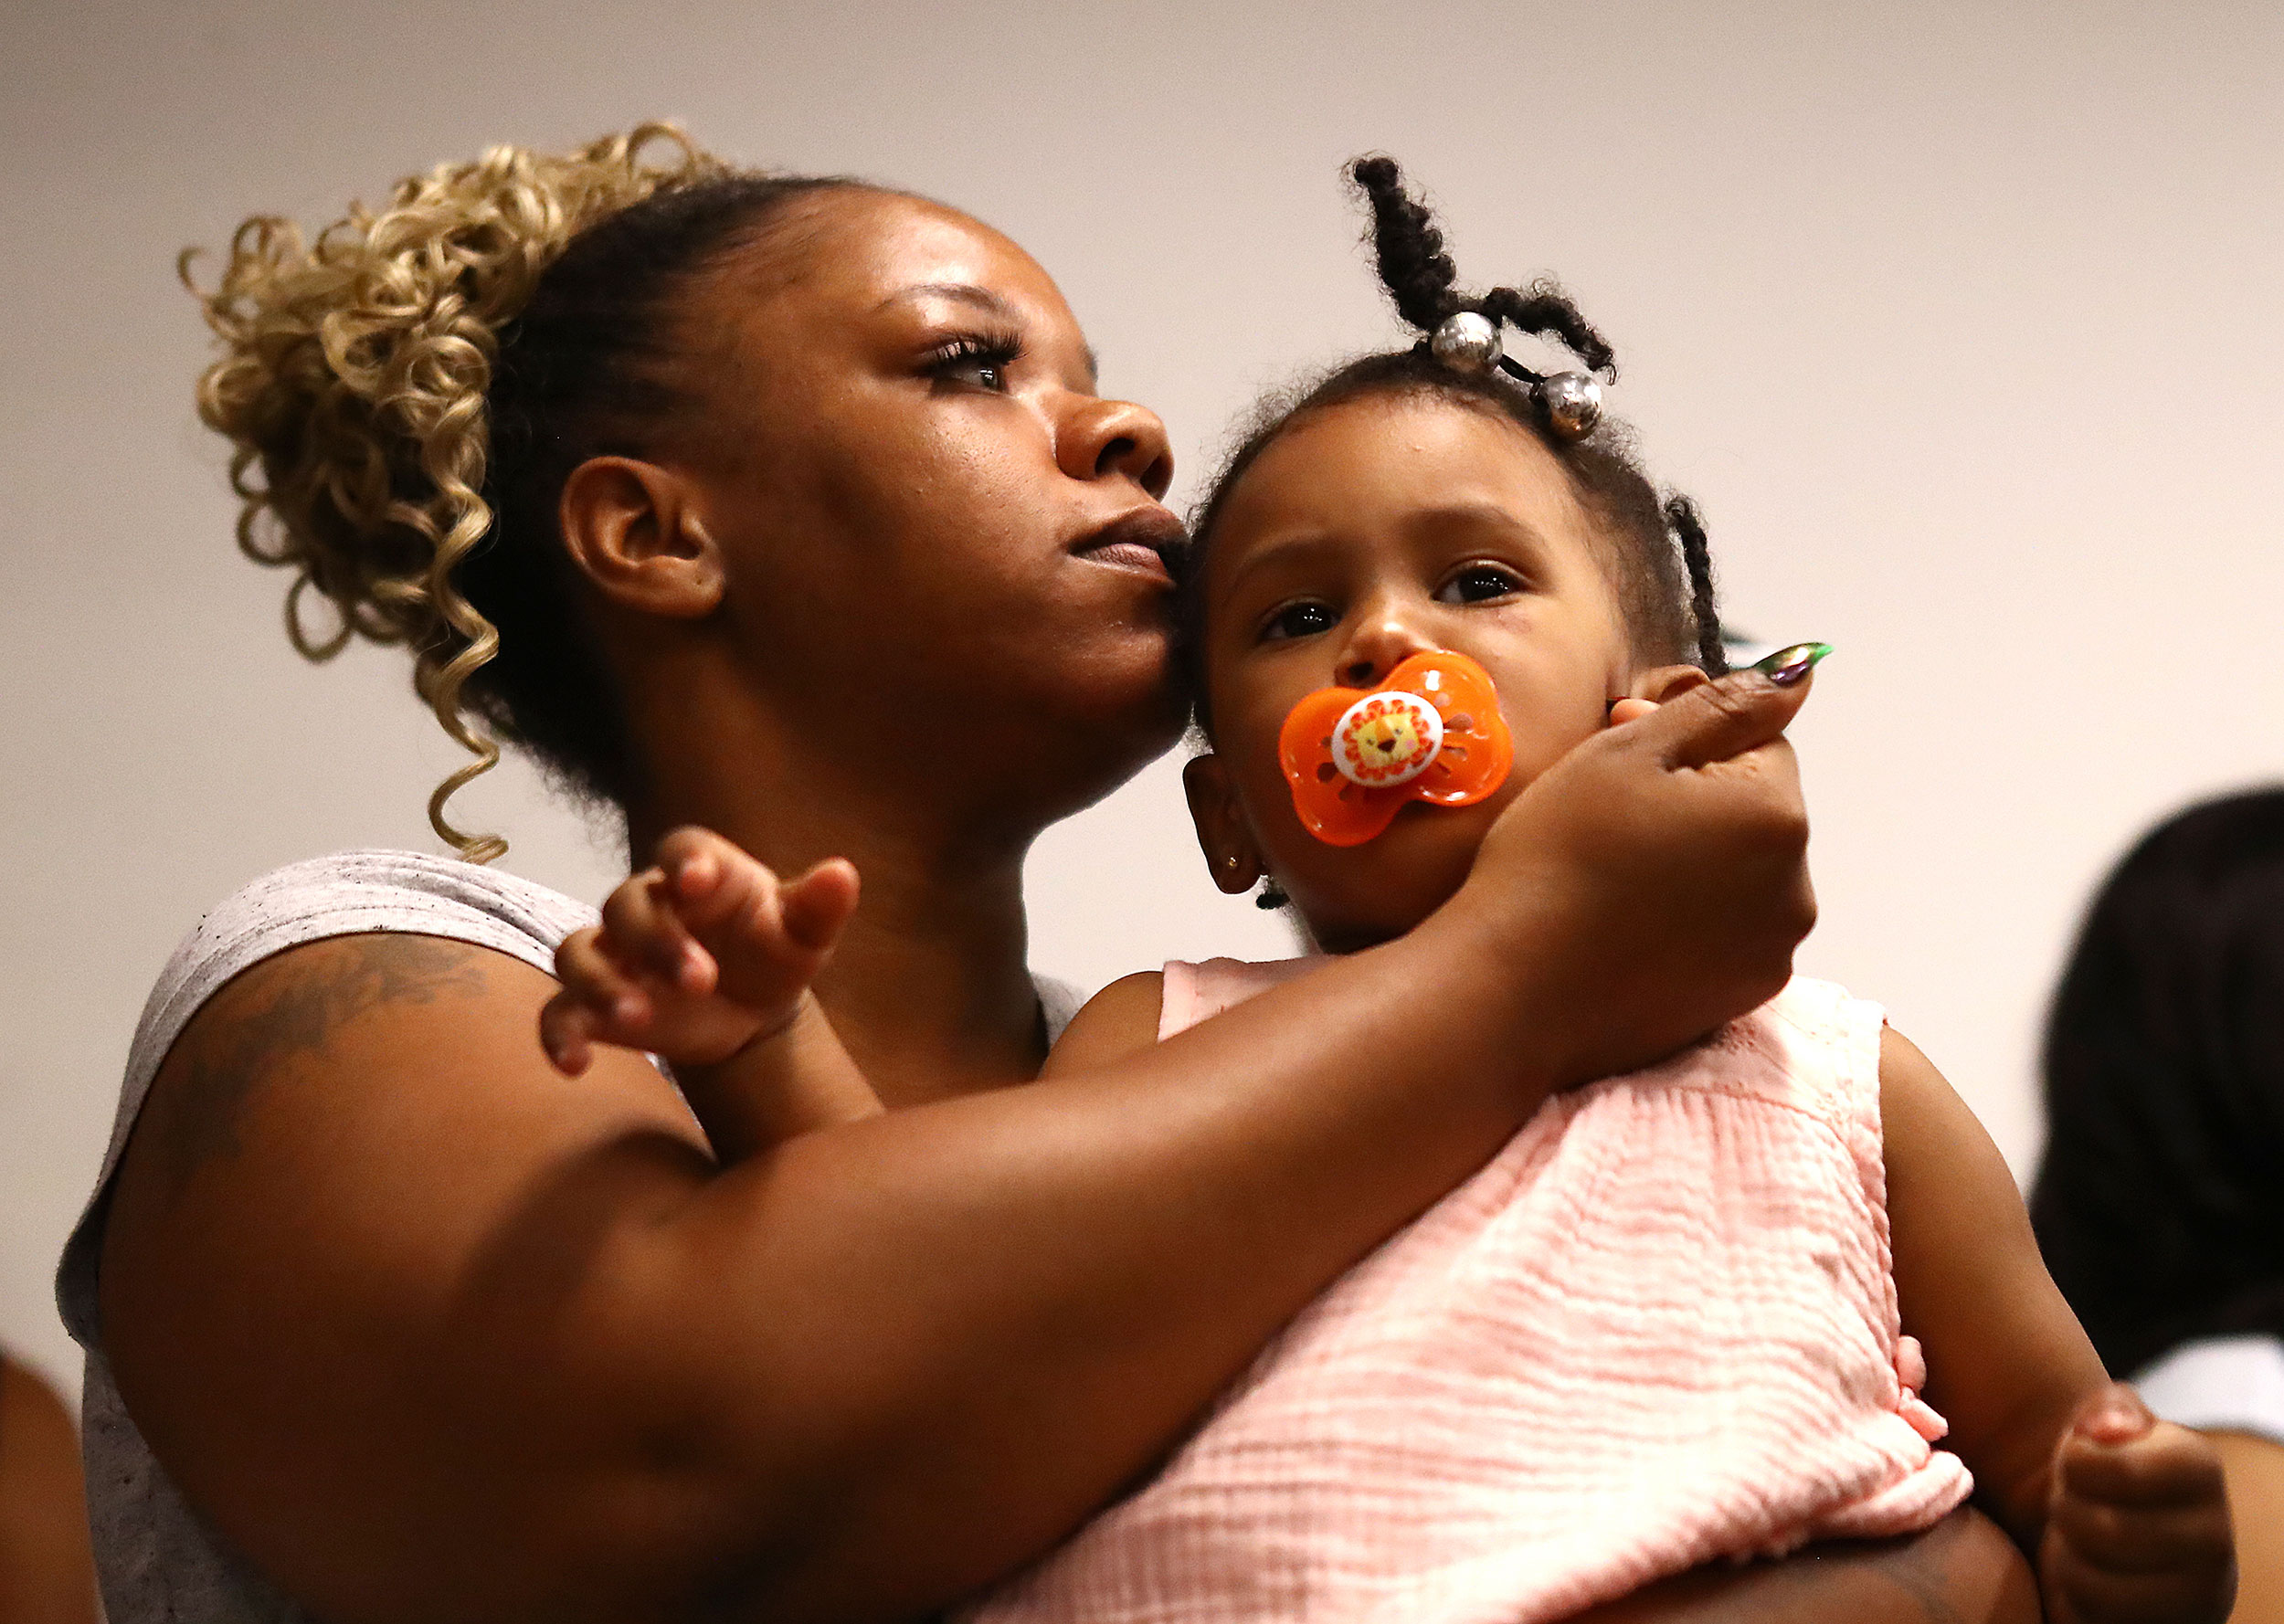 Tomika Miller, the widow of Rayshard Brooks, holds their daughter Memory during a press conference in Atlanta on Monday, June 15.